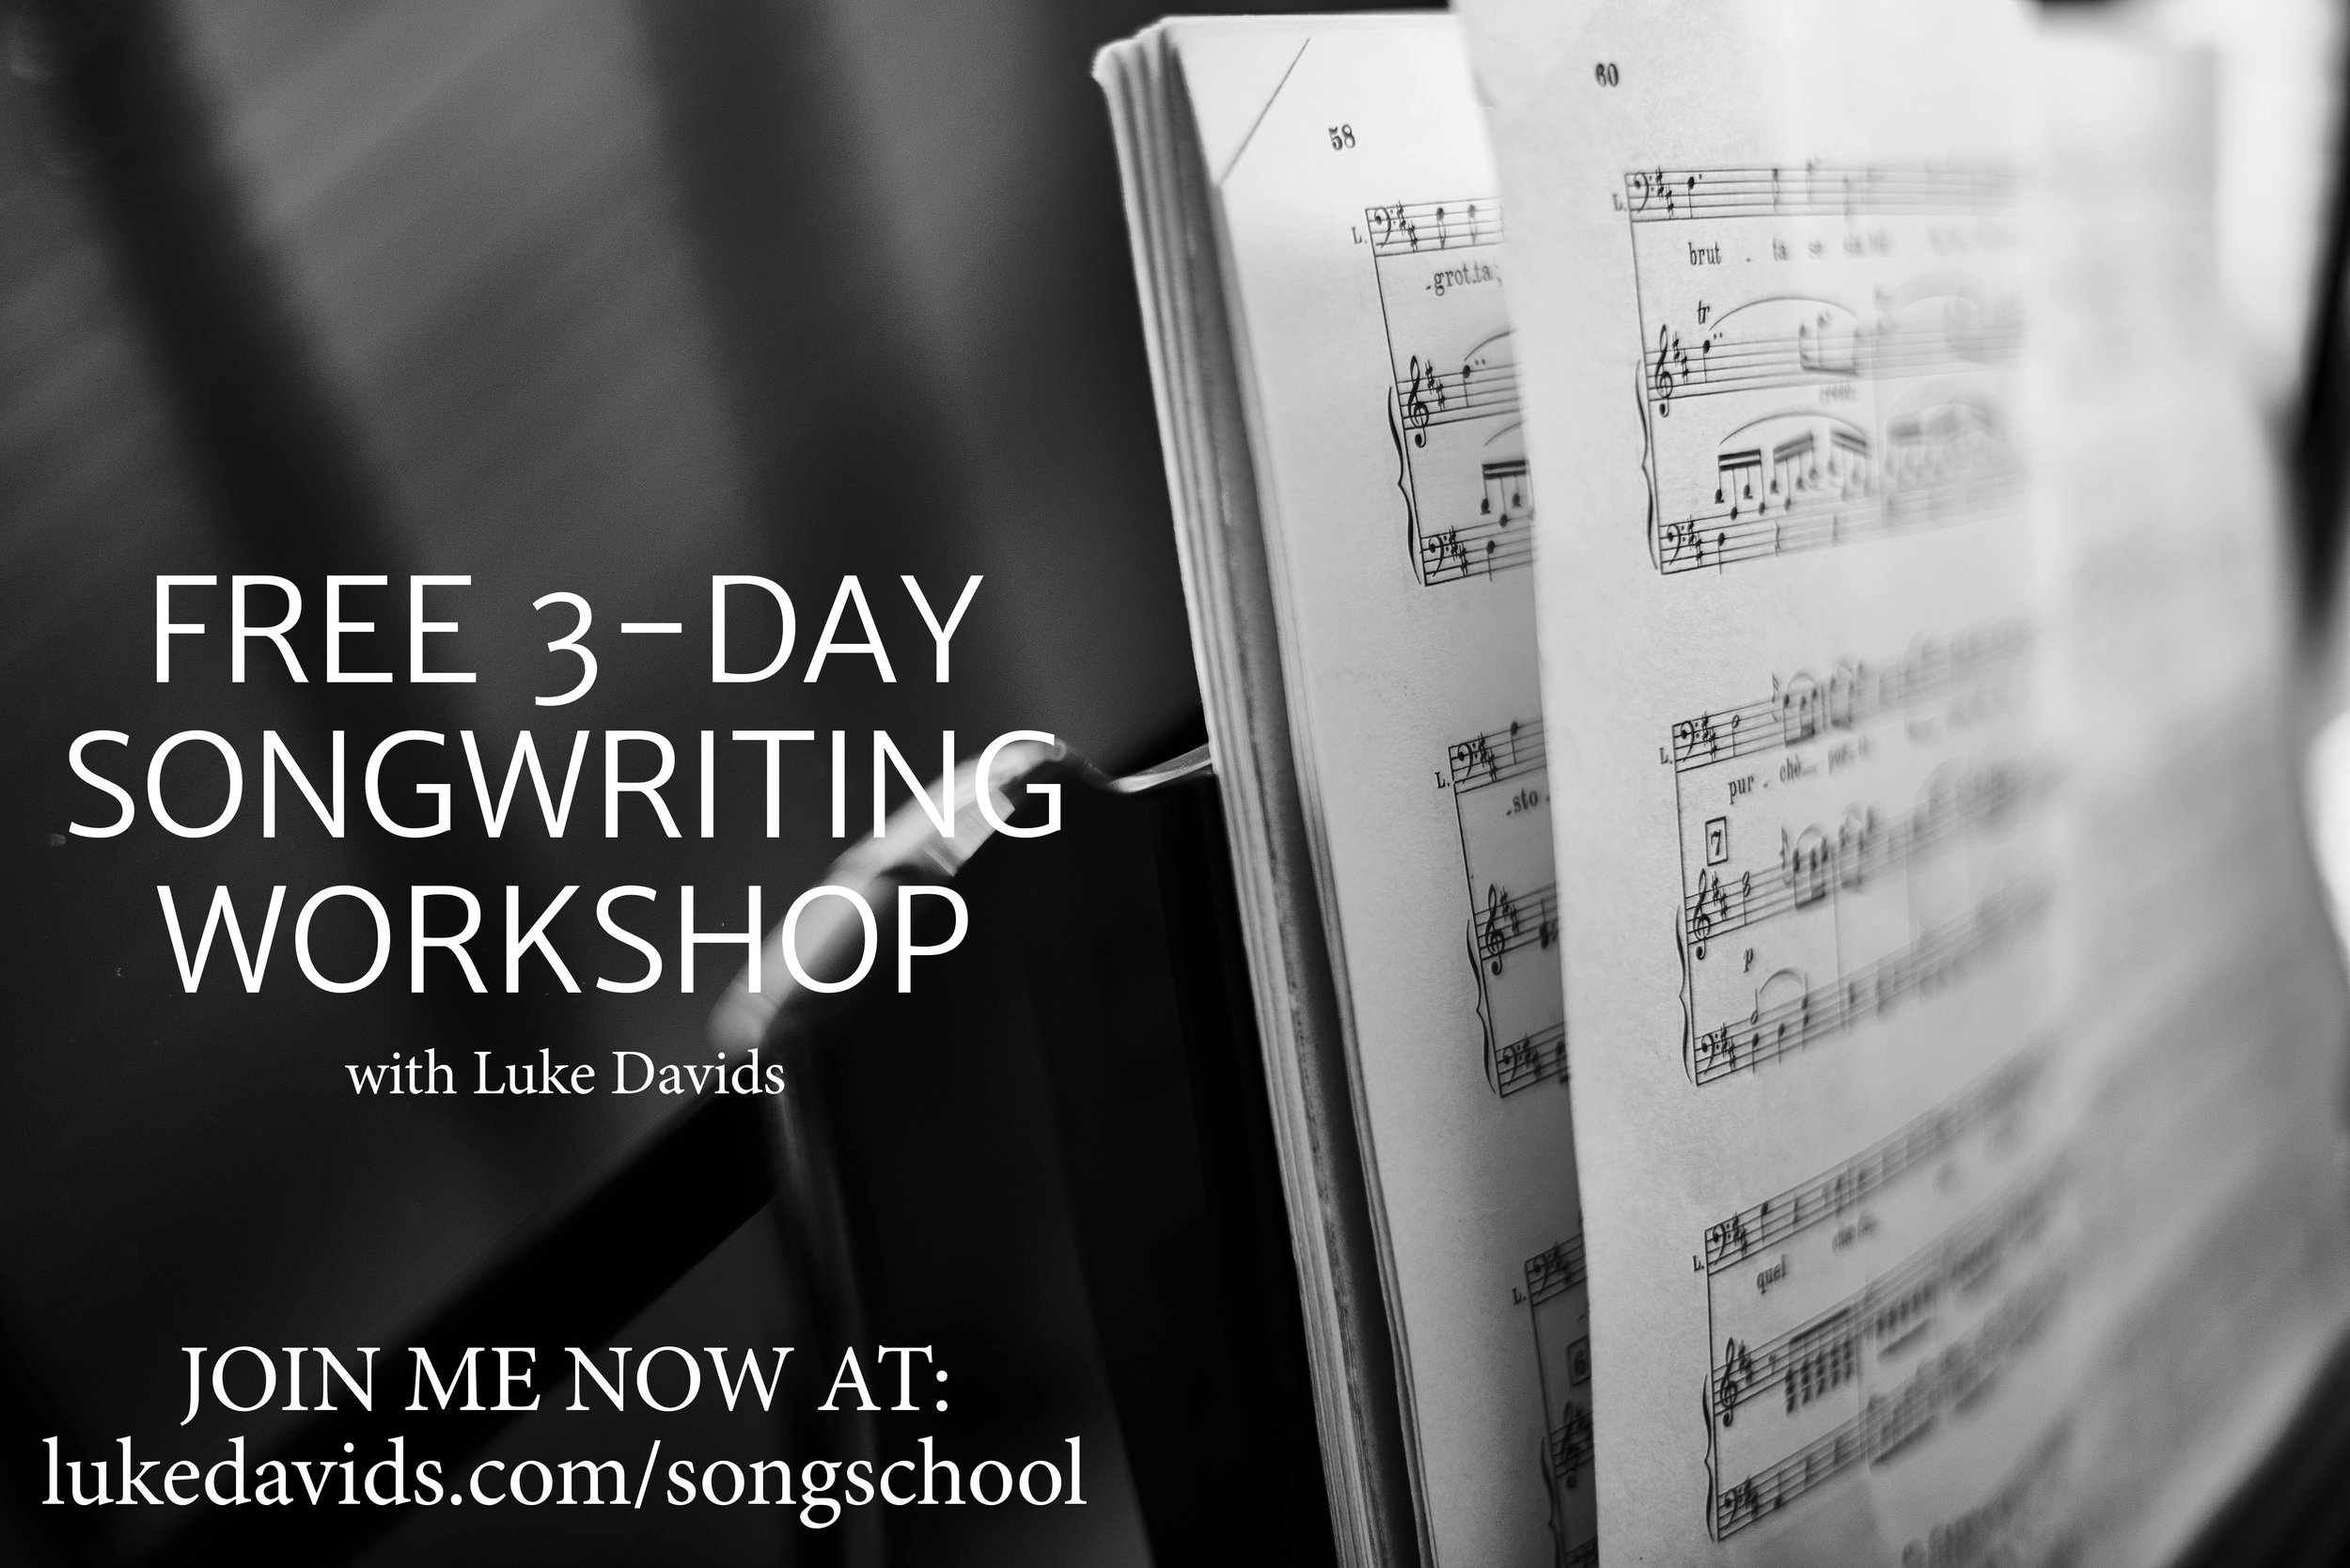 lukedavidssongwritingworkshop.jpg